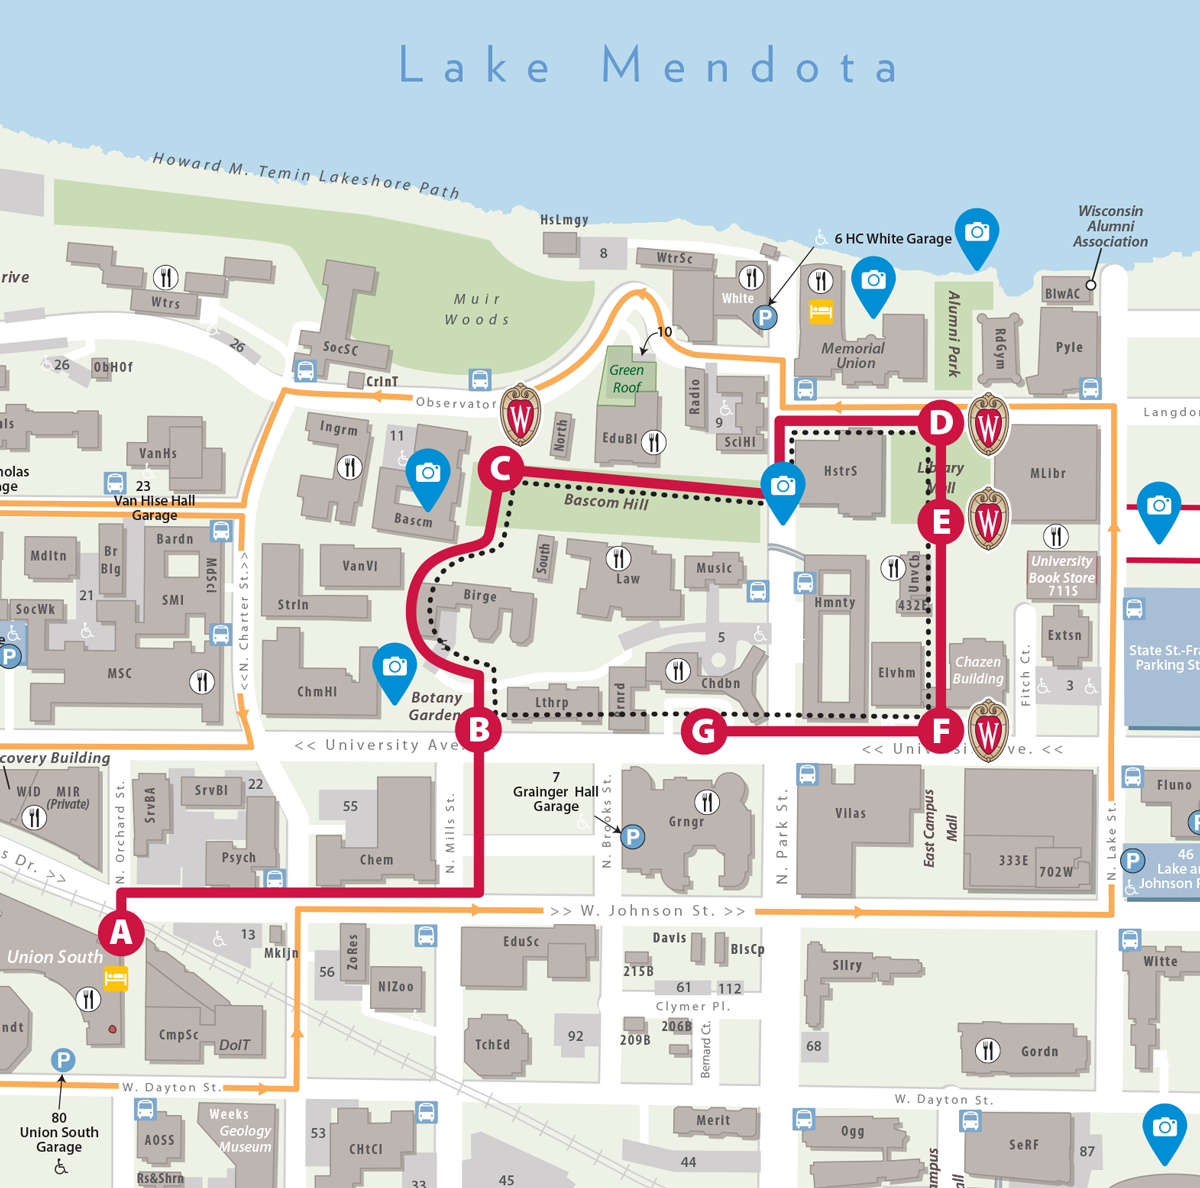 university of wisconsin madison campus map Self Guided Tour Campus And Visitor Relations Uw Madison university of wisconsin madison campus map